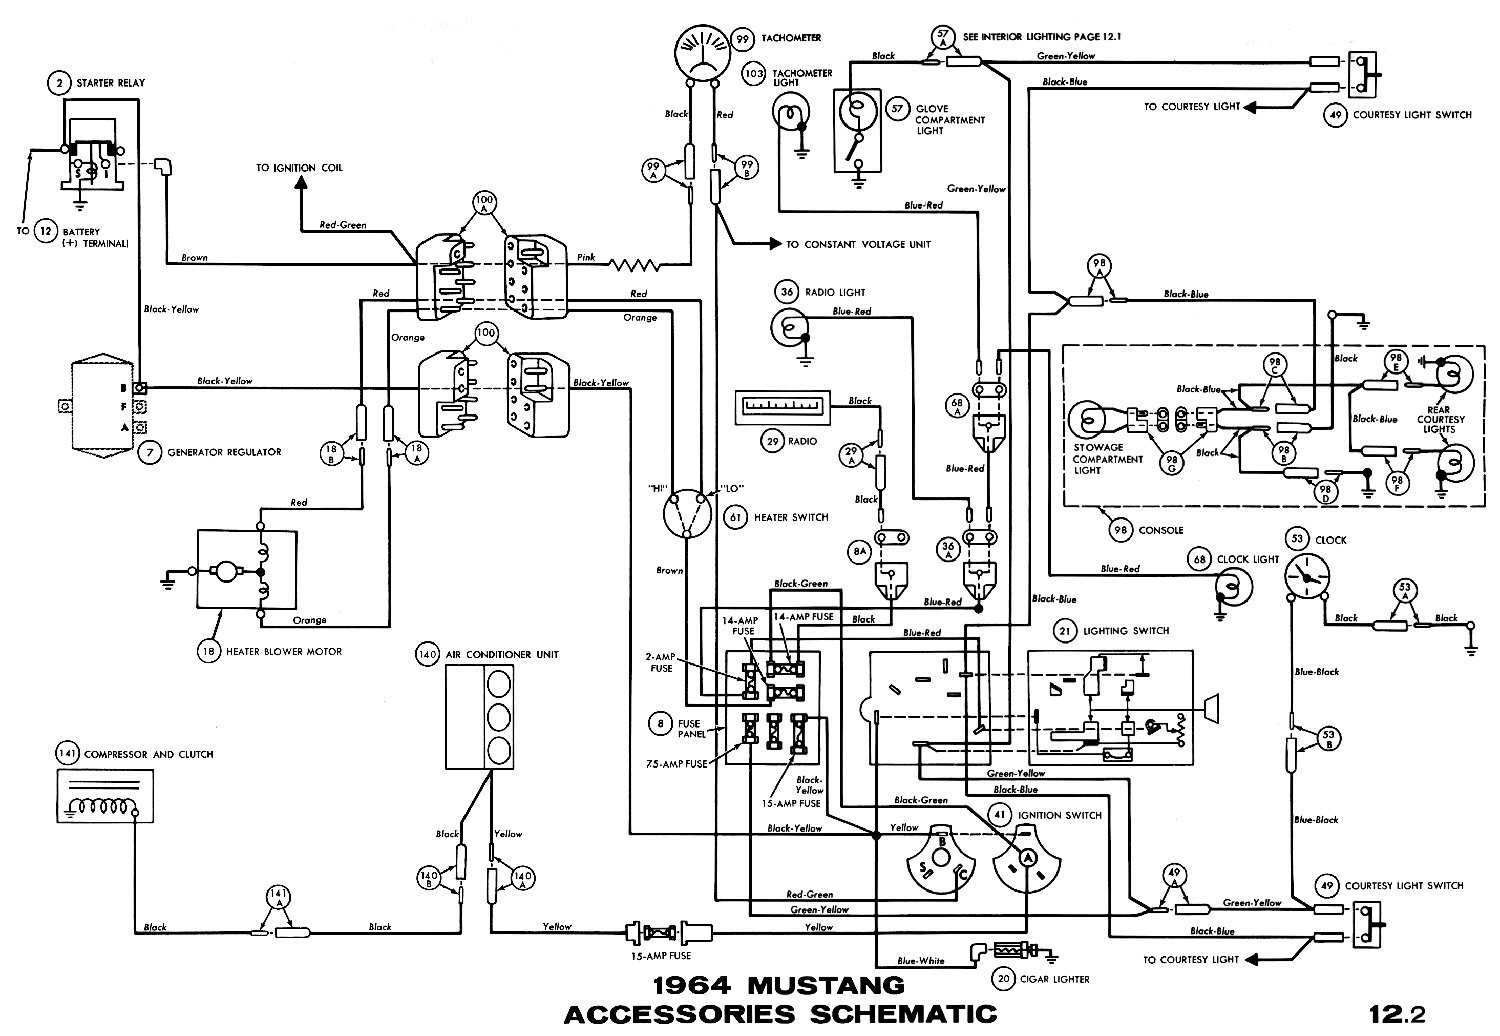 65 Corvette Wiring Schematic Well Detailed Wiring Diagrams \u2022 1970 Nova Wiring  Diagram 1975 Corvette Wiring Schematic